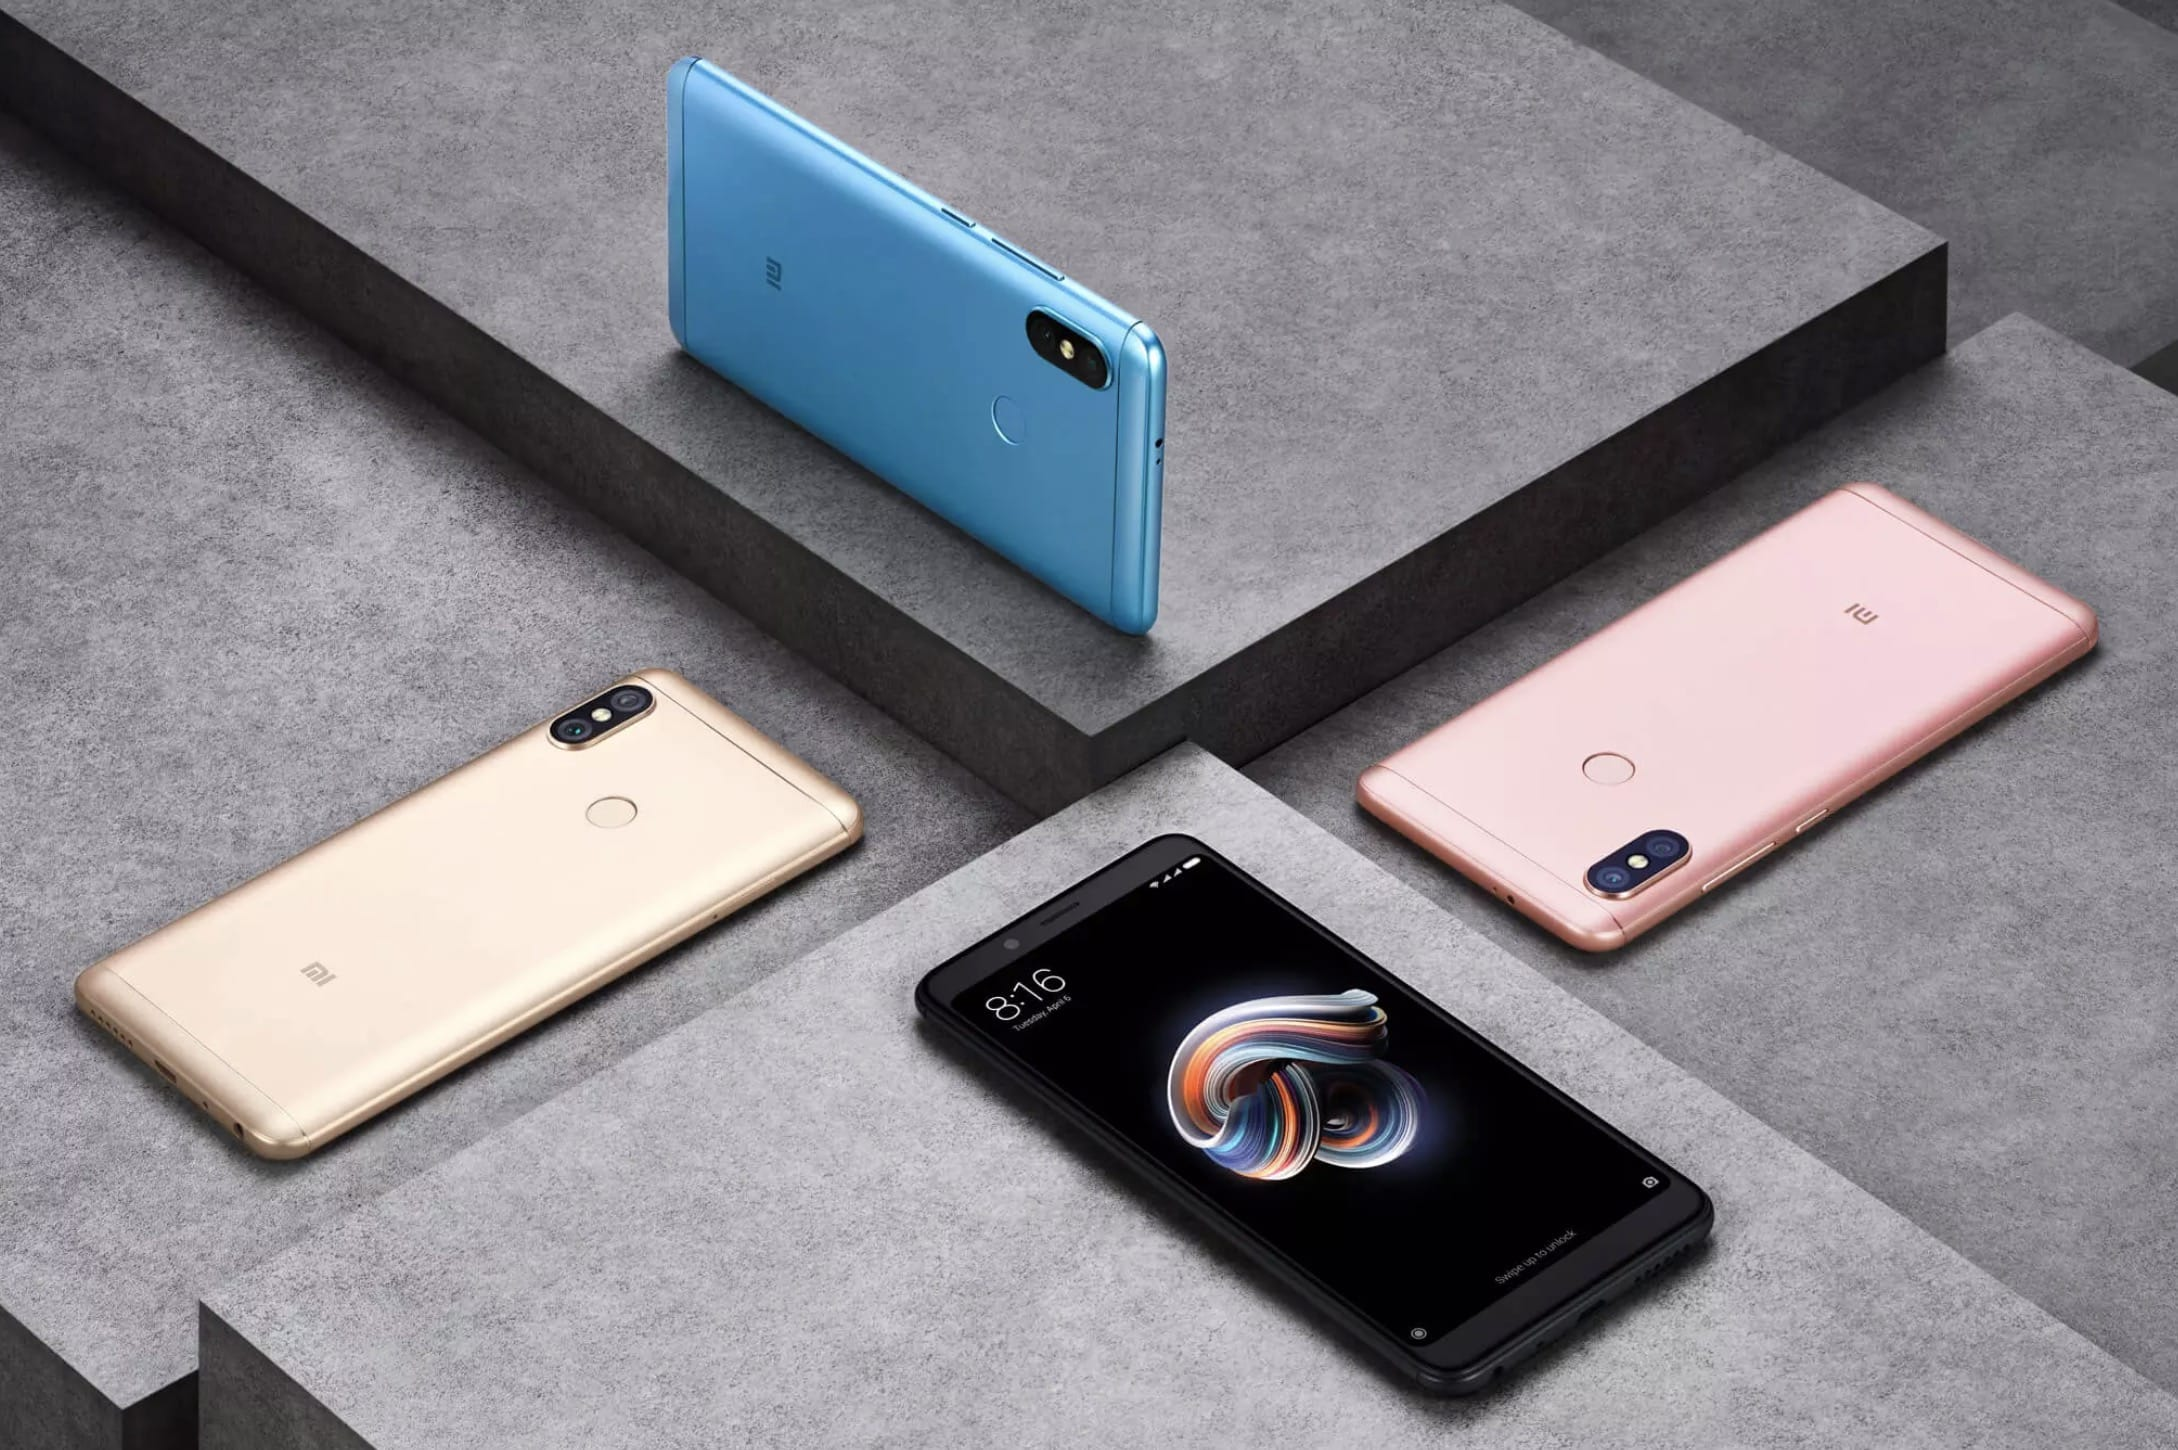 Download Xiaomi Redmi Note 5 Wallpapers: Все смартфоны Xiaomi Redmi Note 5 и Redmi Note 5 Pro